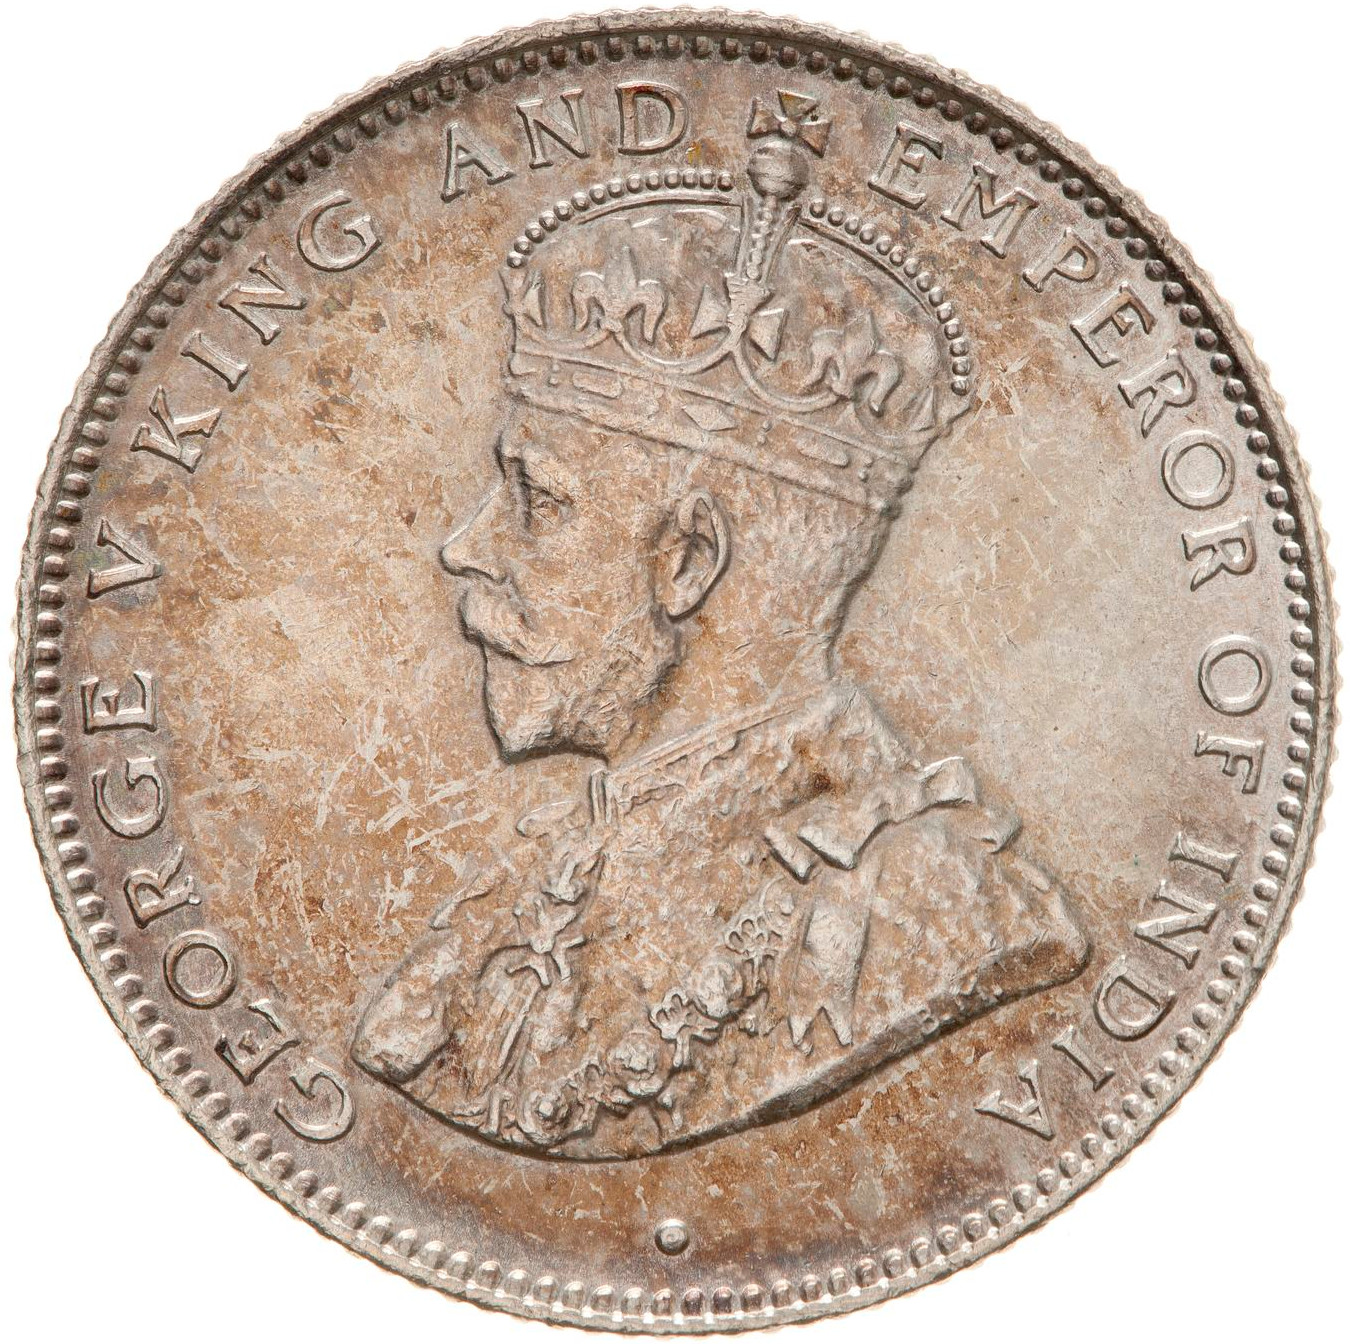 Twenty Five Cents: Photo Coin - 25 Cents, British Honduras (Belize), 1911